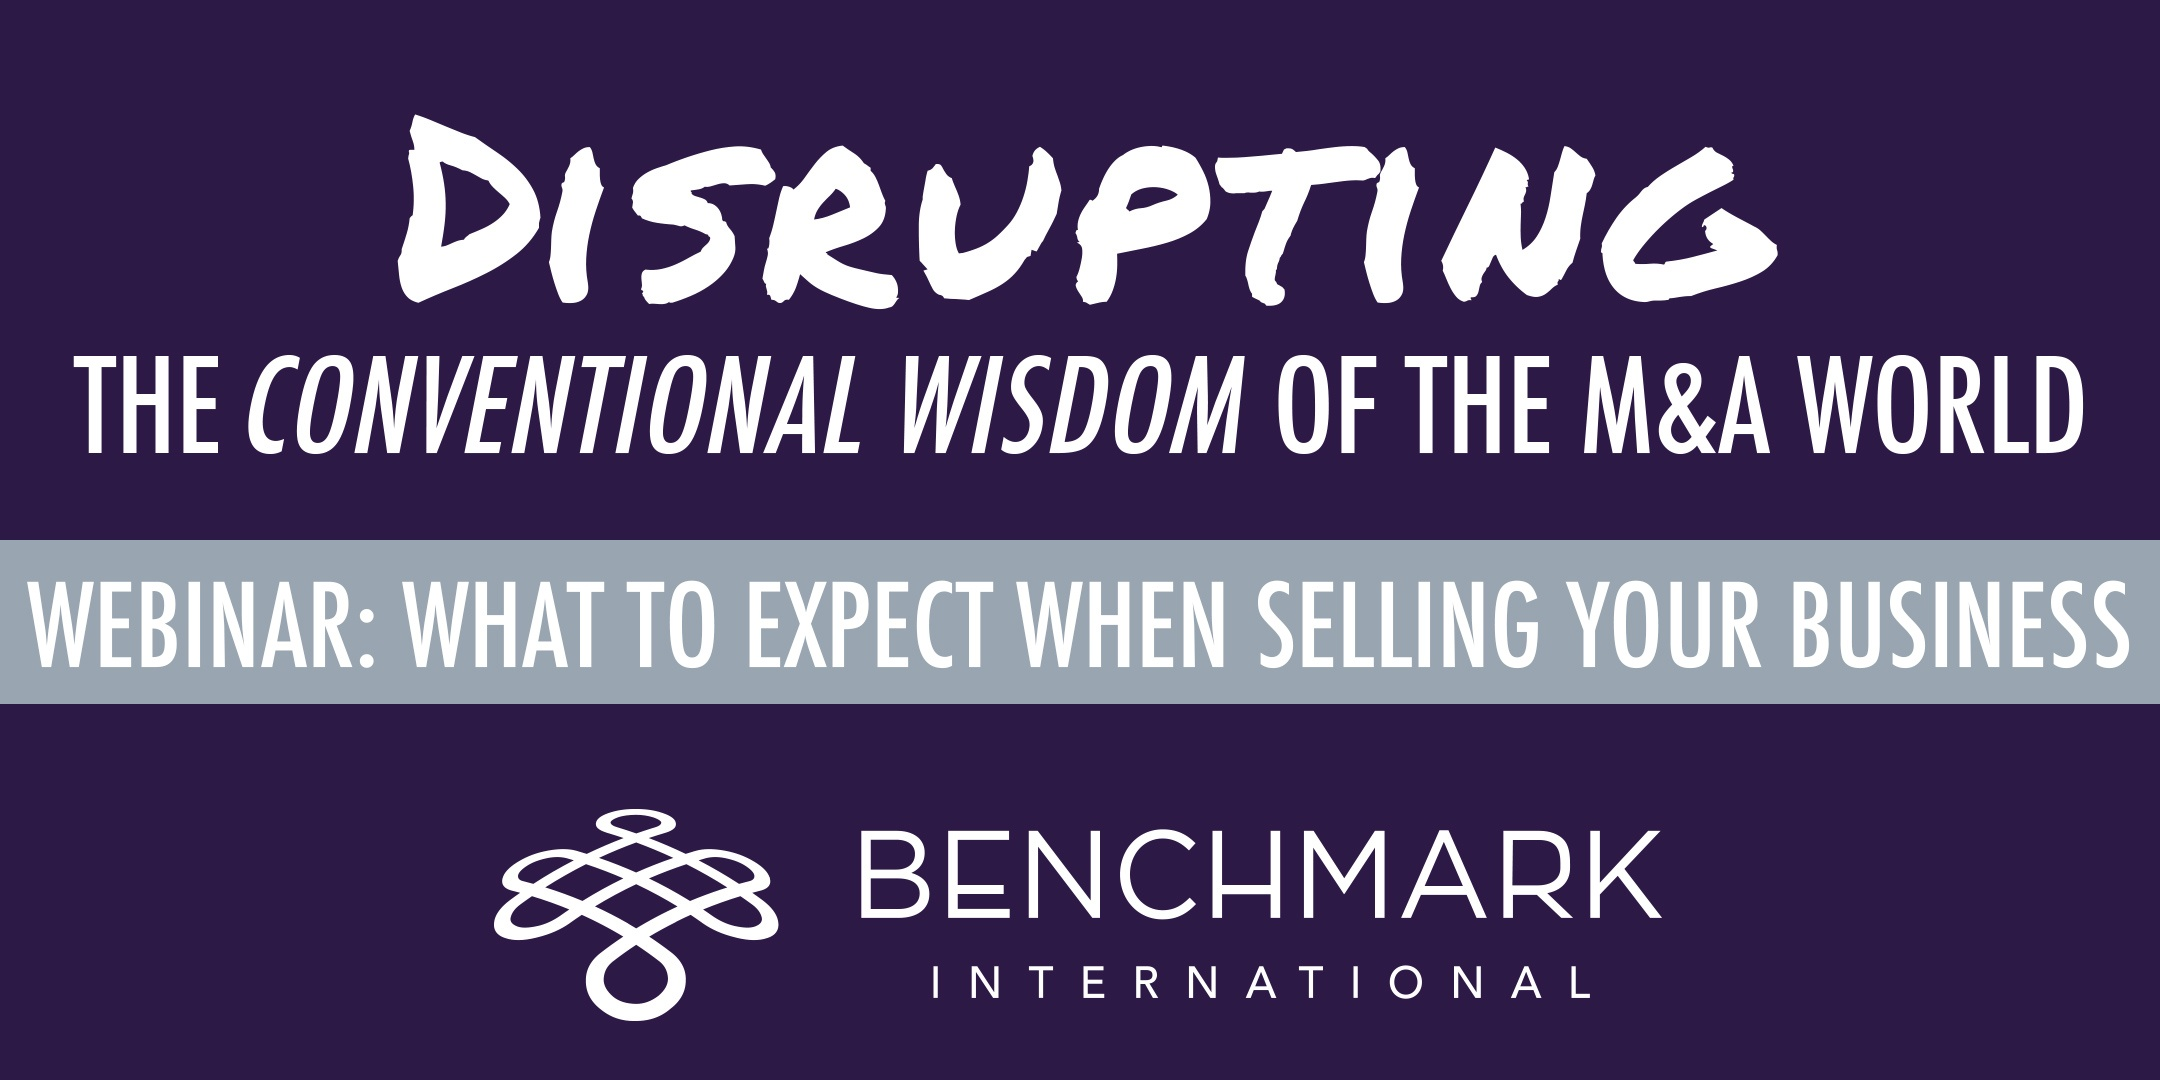 Upcoming Webinar: What to Expect When Selling Your Business